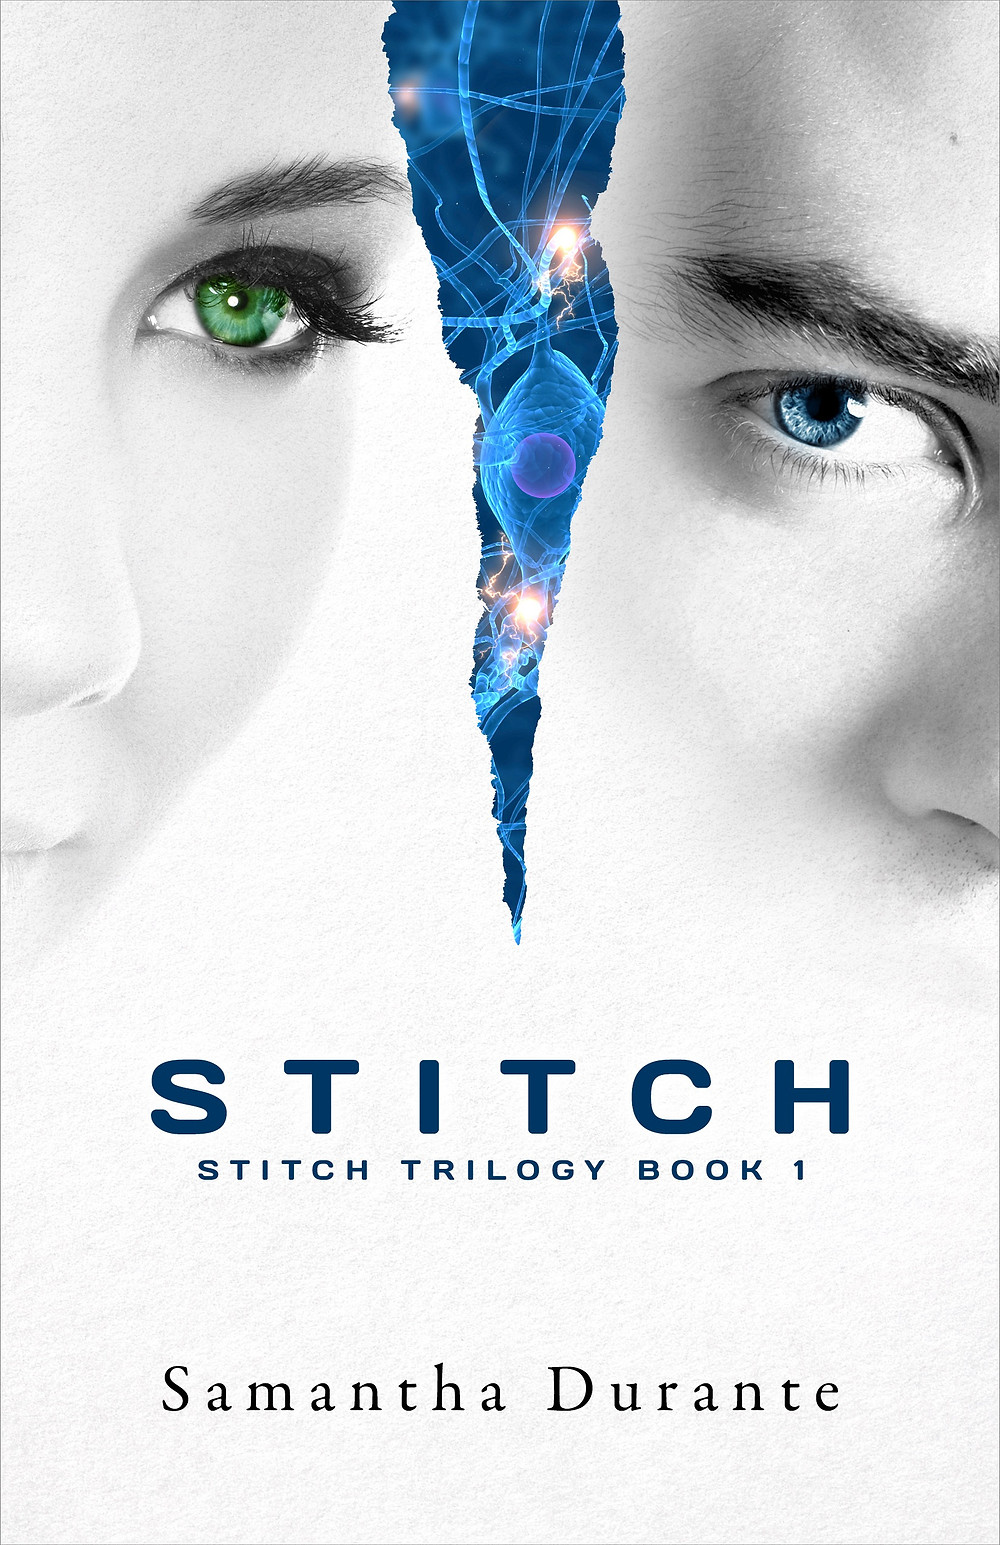 Book Cover Art for Stitch